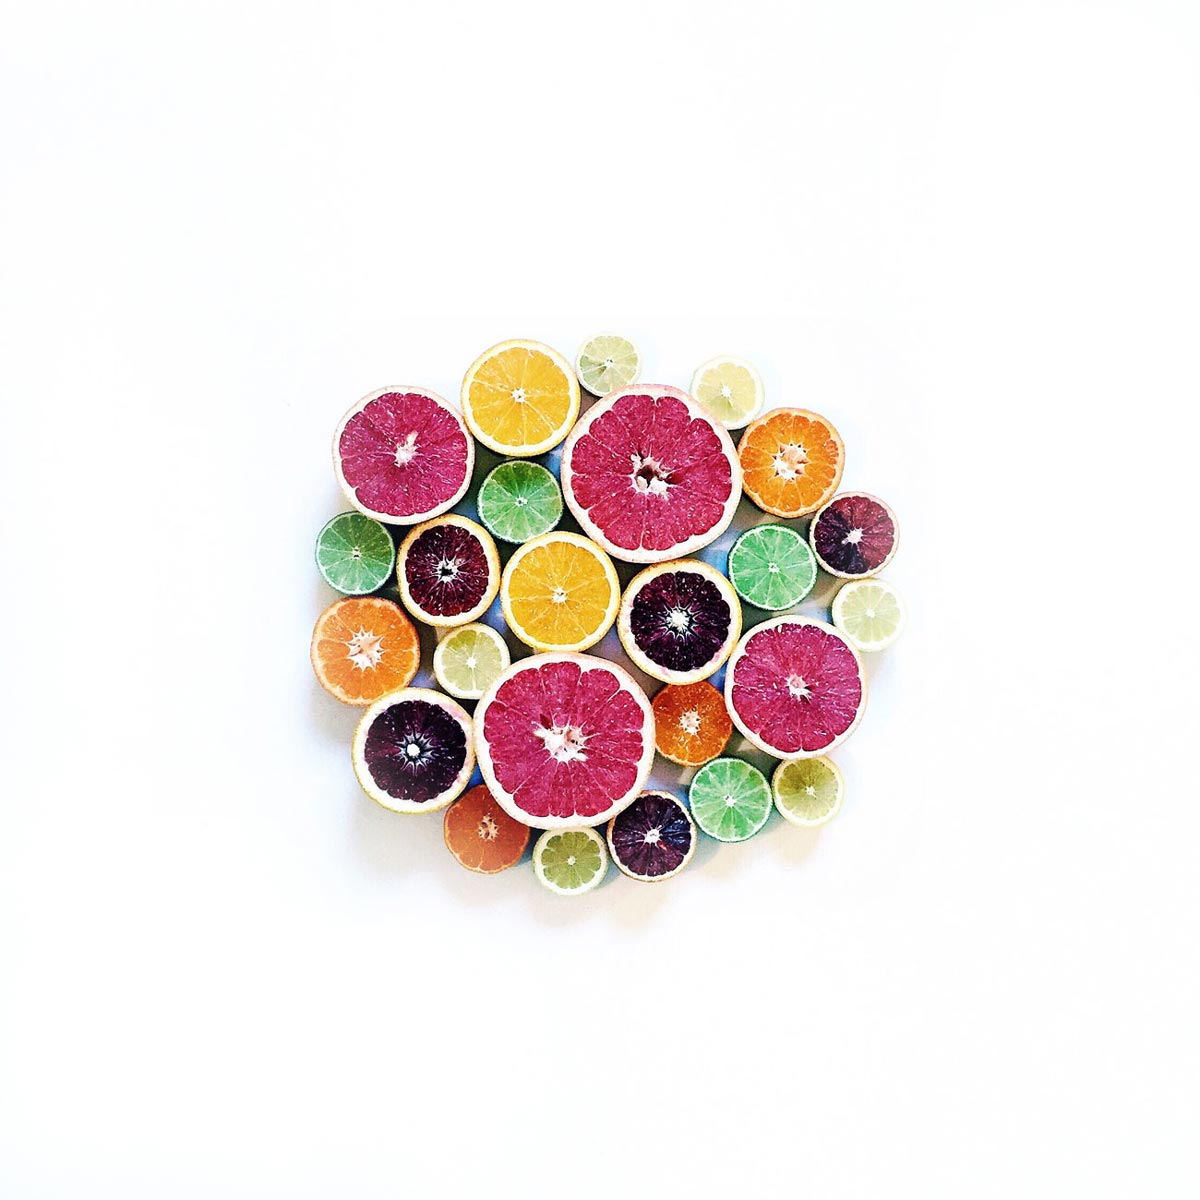 Photo by Ja Soon Kim of brightly colored, sliced citrus pieces